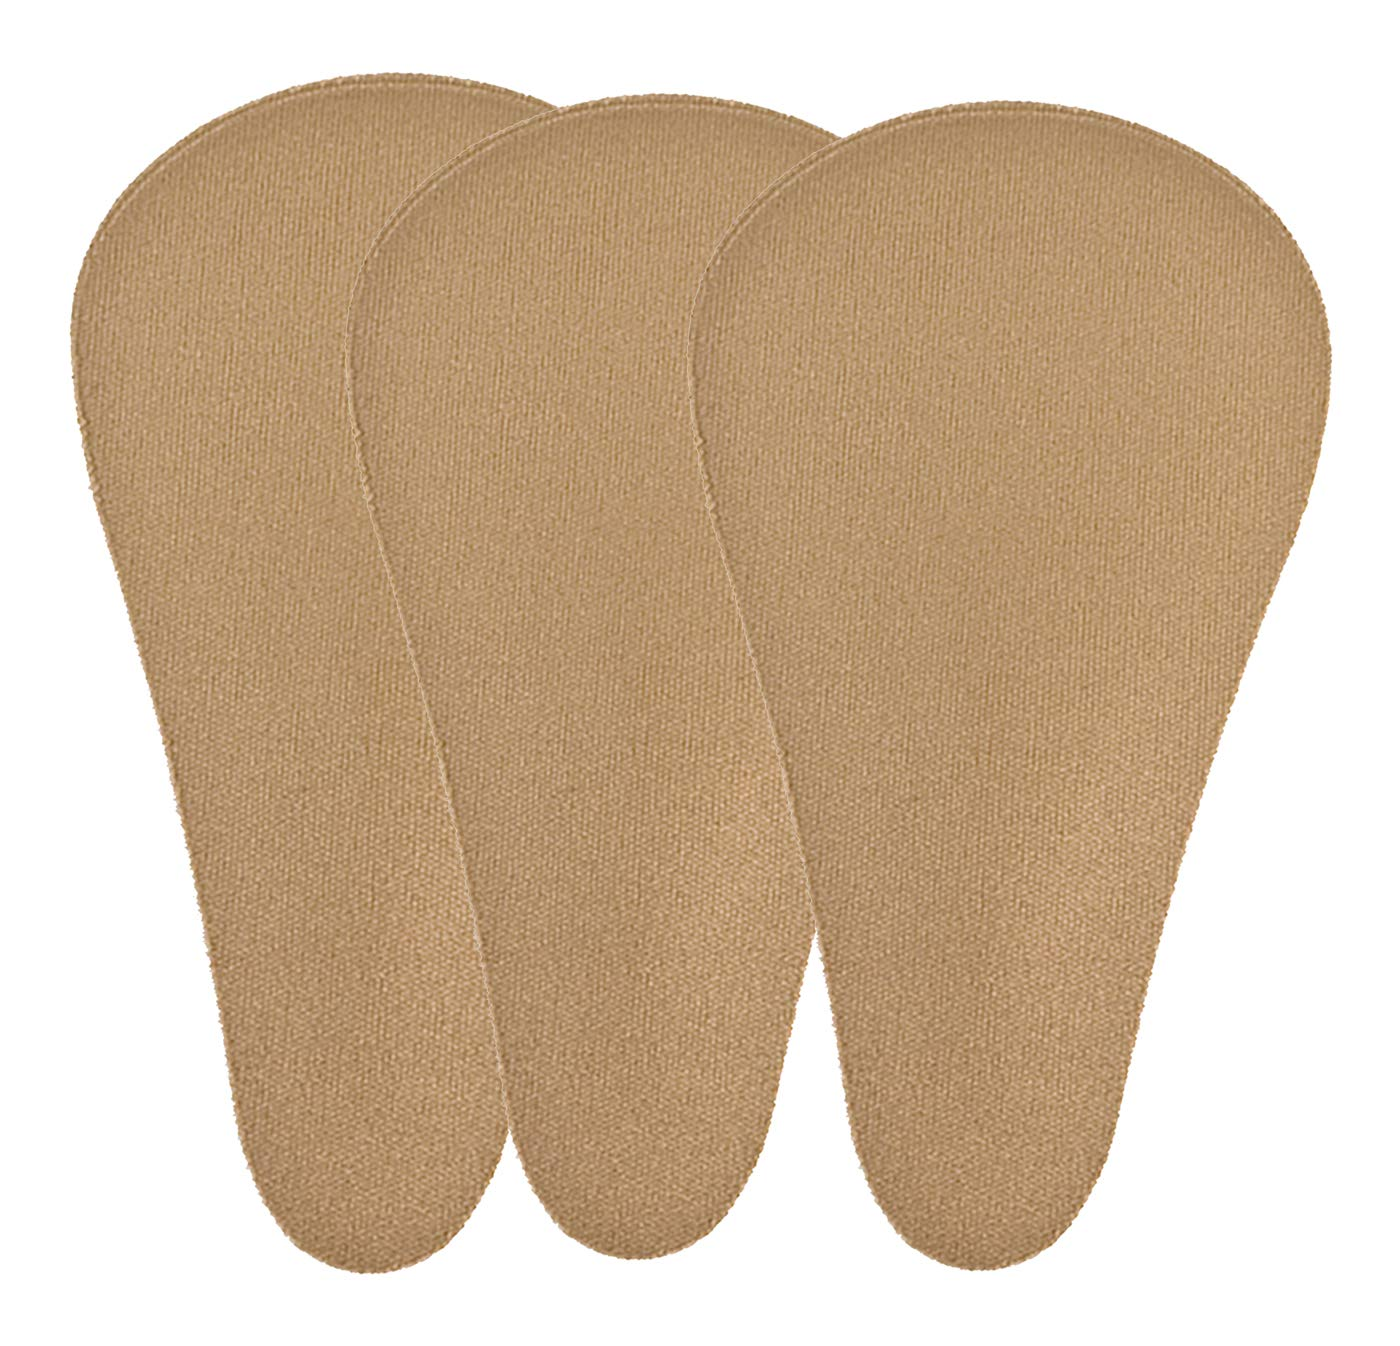 Camel Not Camel Toe Cover Foam Pad